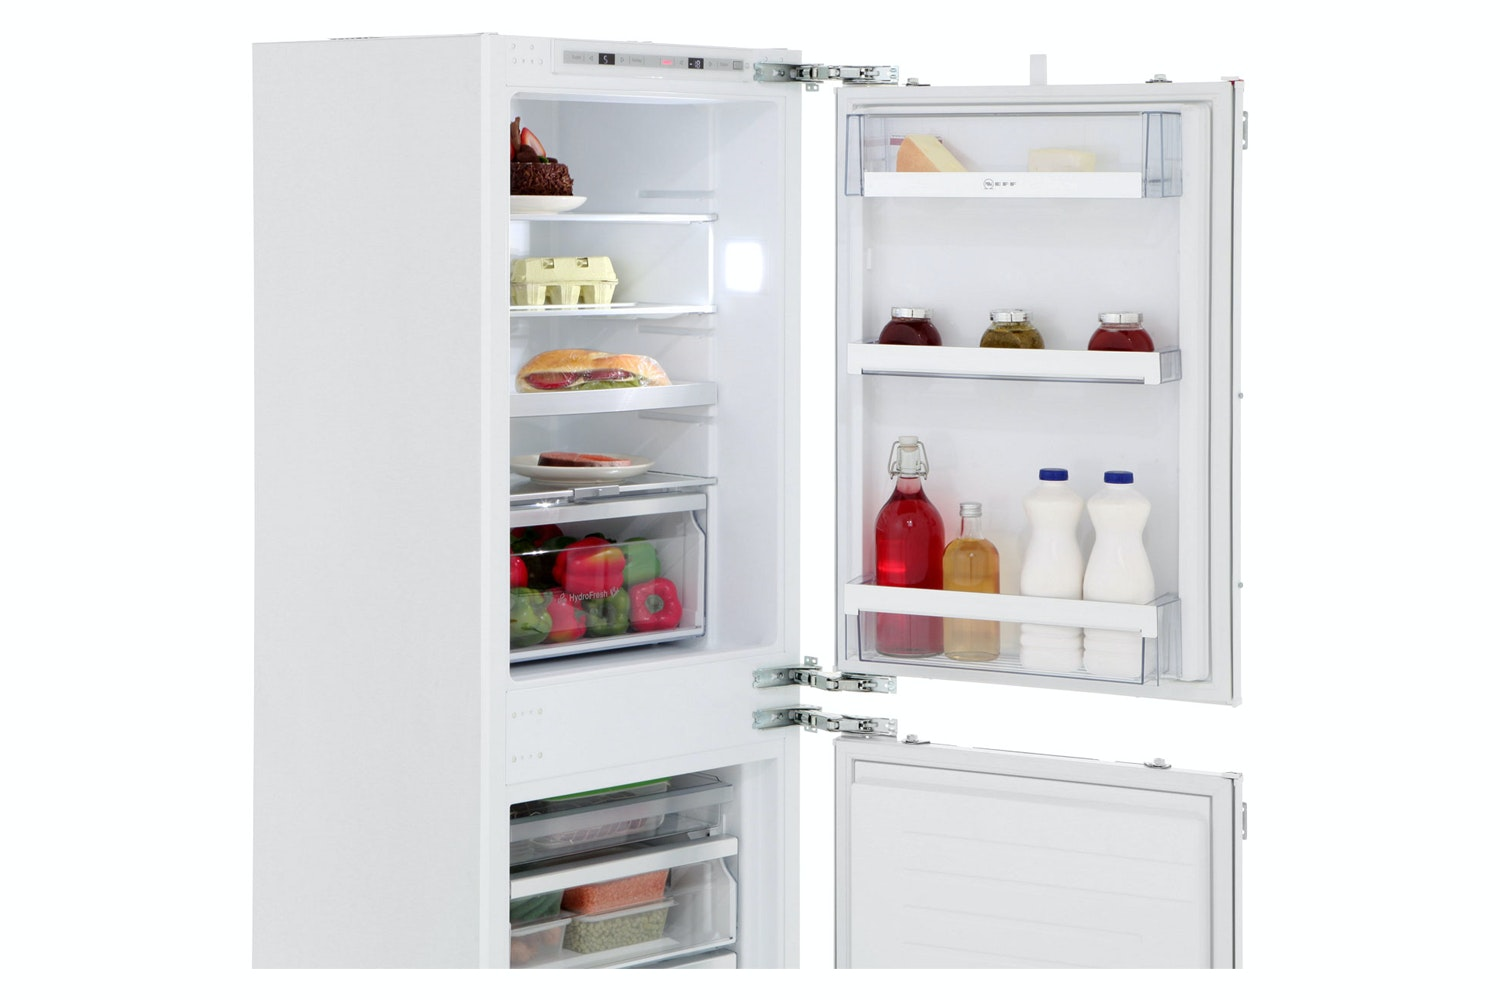 Neff Fridge Freezer | KI7853D30G